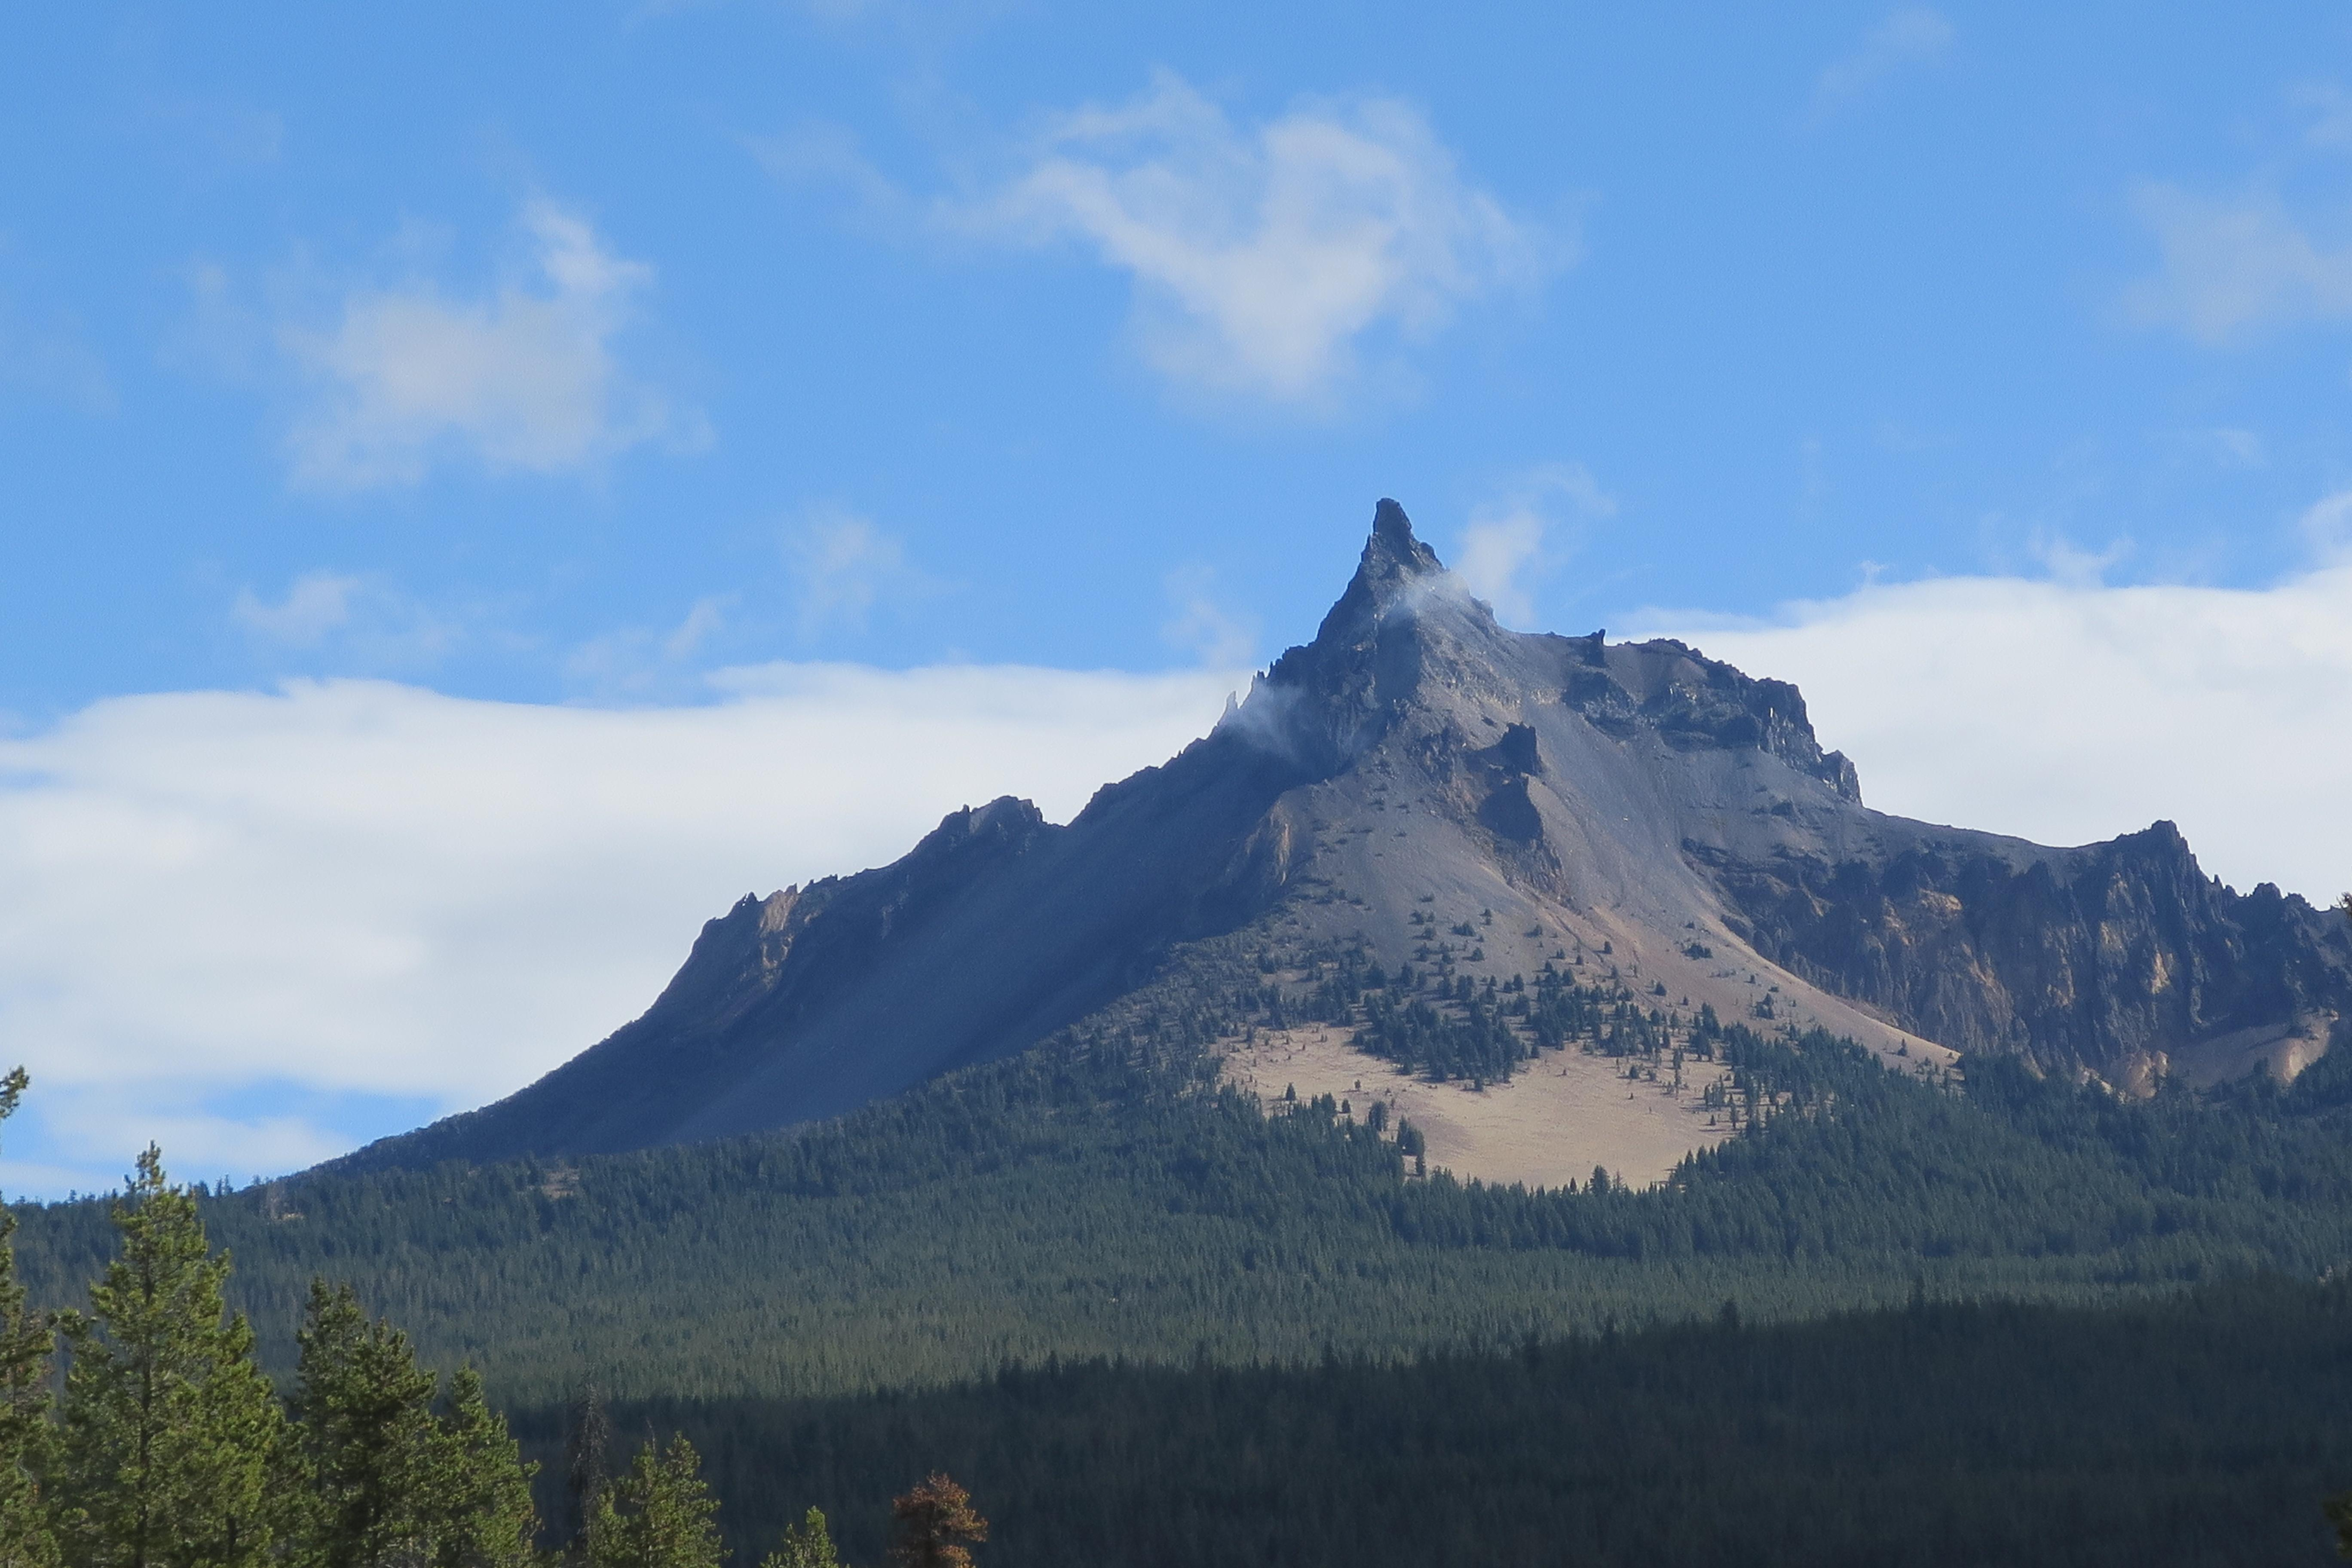 Mount Thielsen looms tall from the Mount Tipsoo Trail viewpoint. Photo by Lee Juillerat